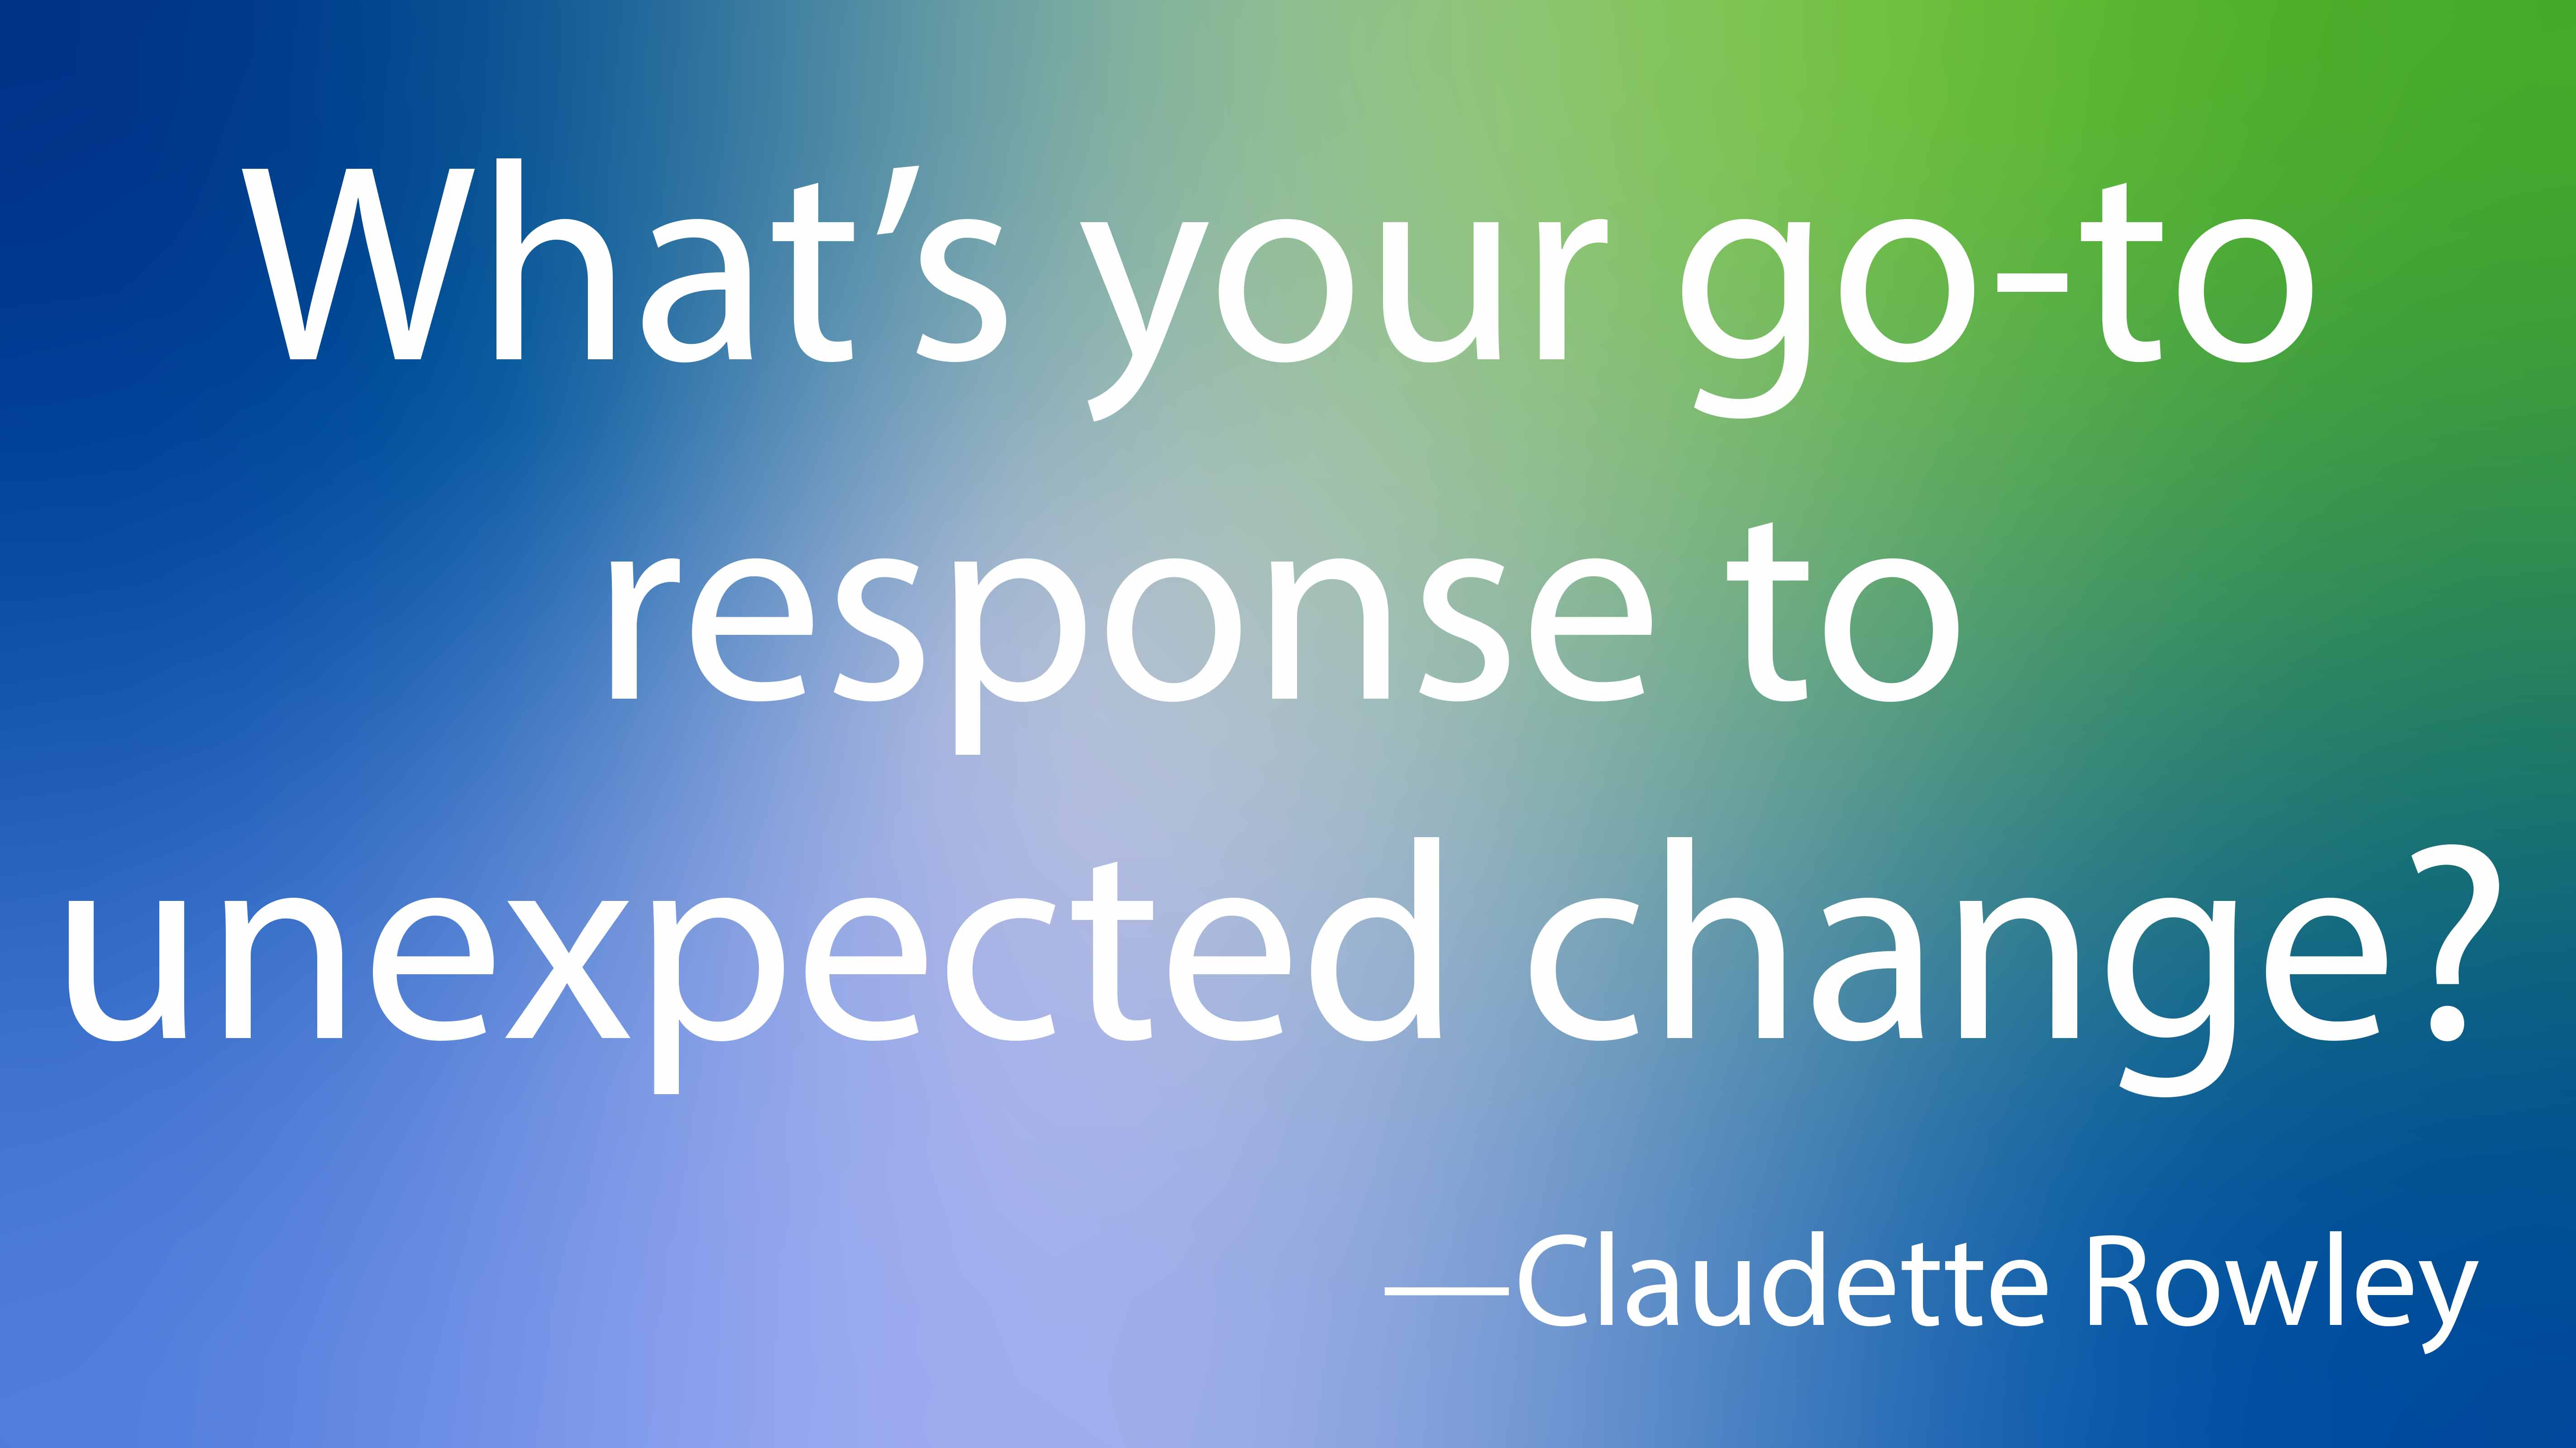 What's your go-to response to unexpected change?